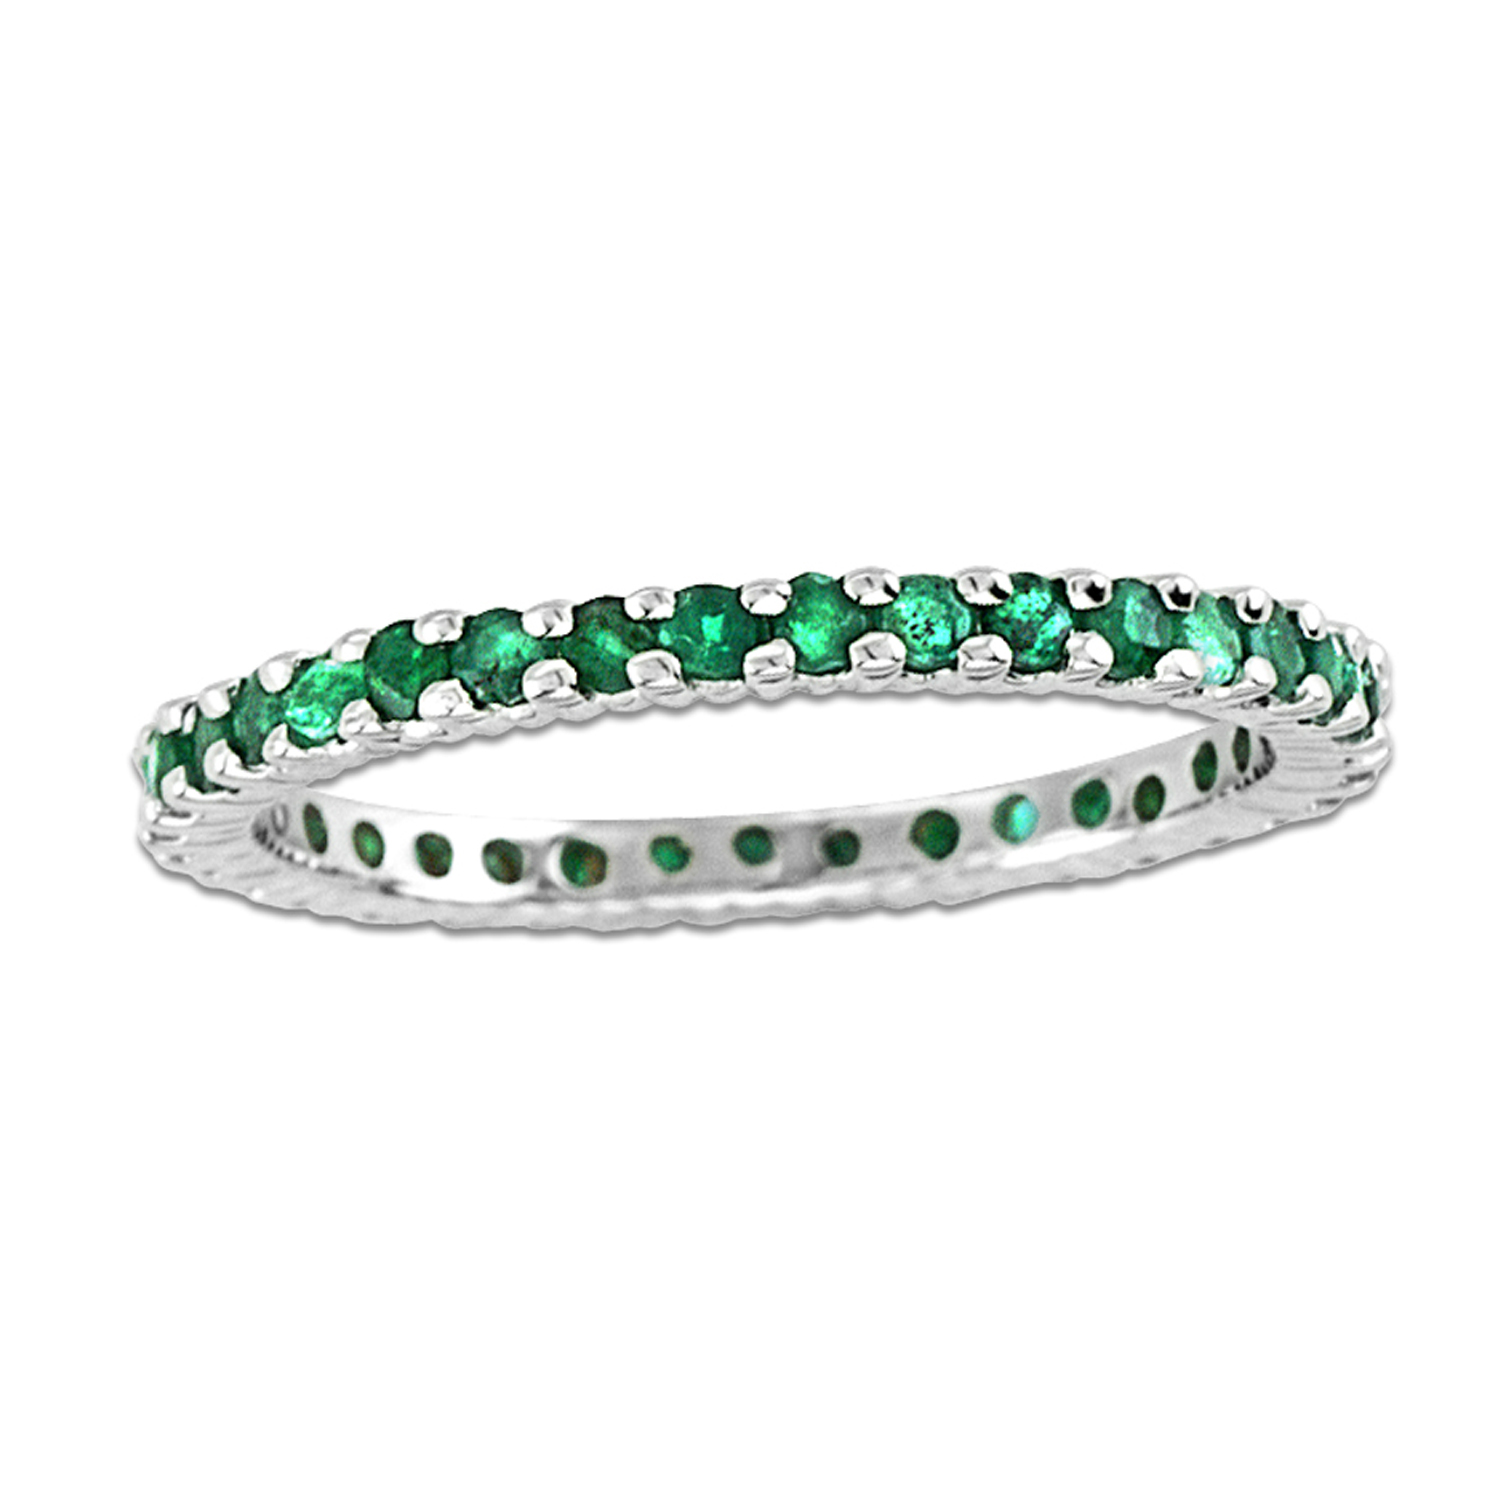 View 14k Gold All Around Eternity Band with 0.75ct tw of Emerald